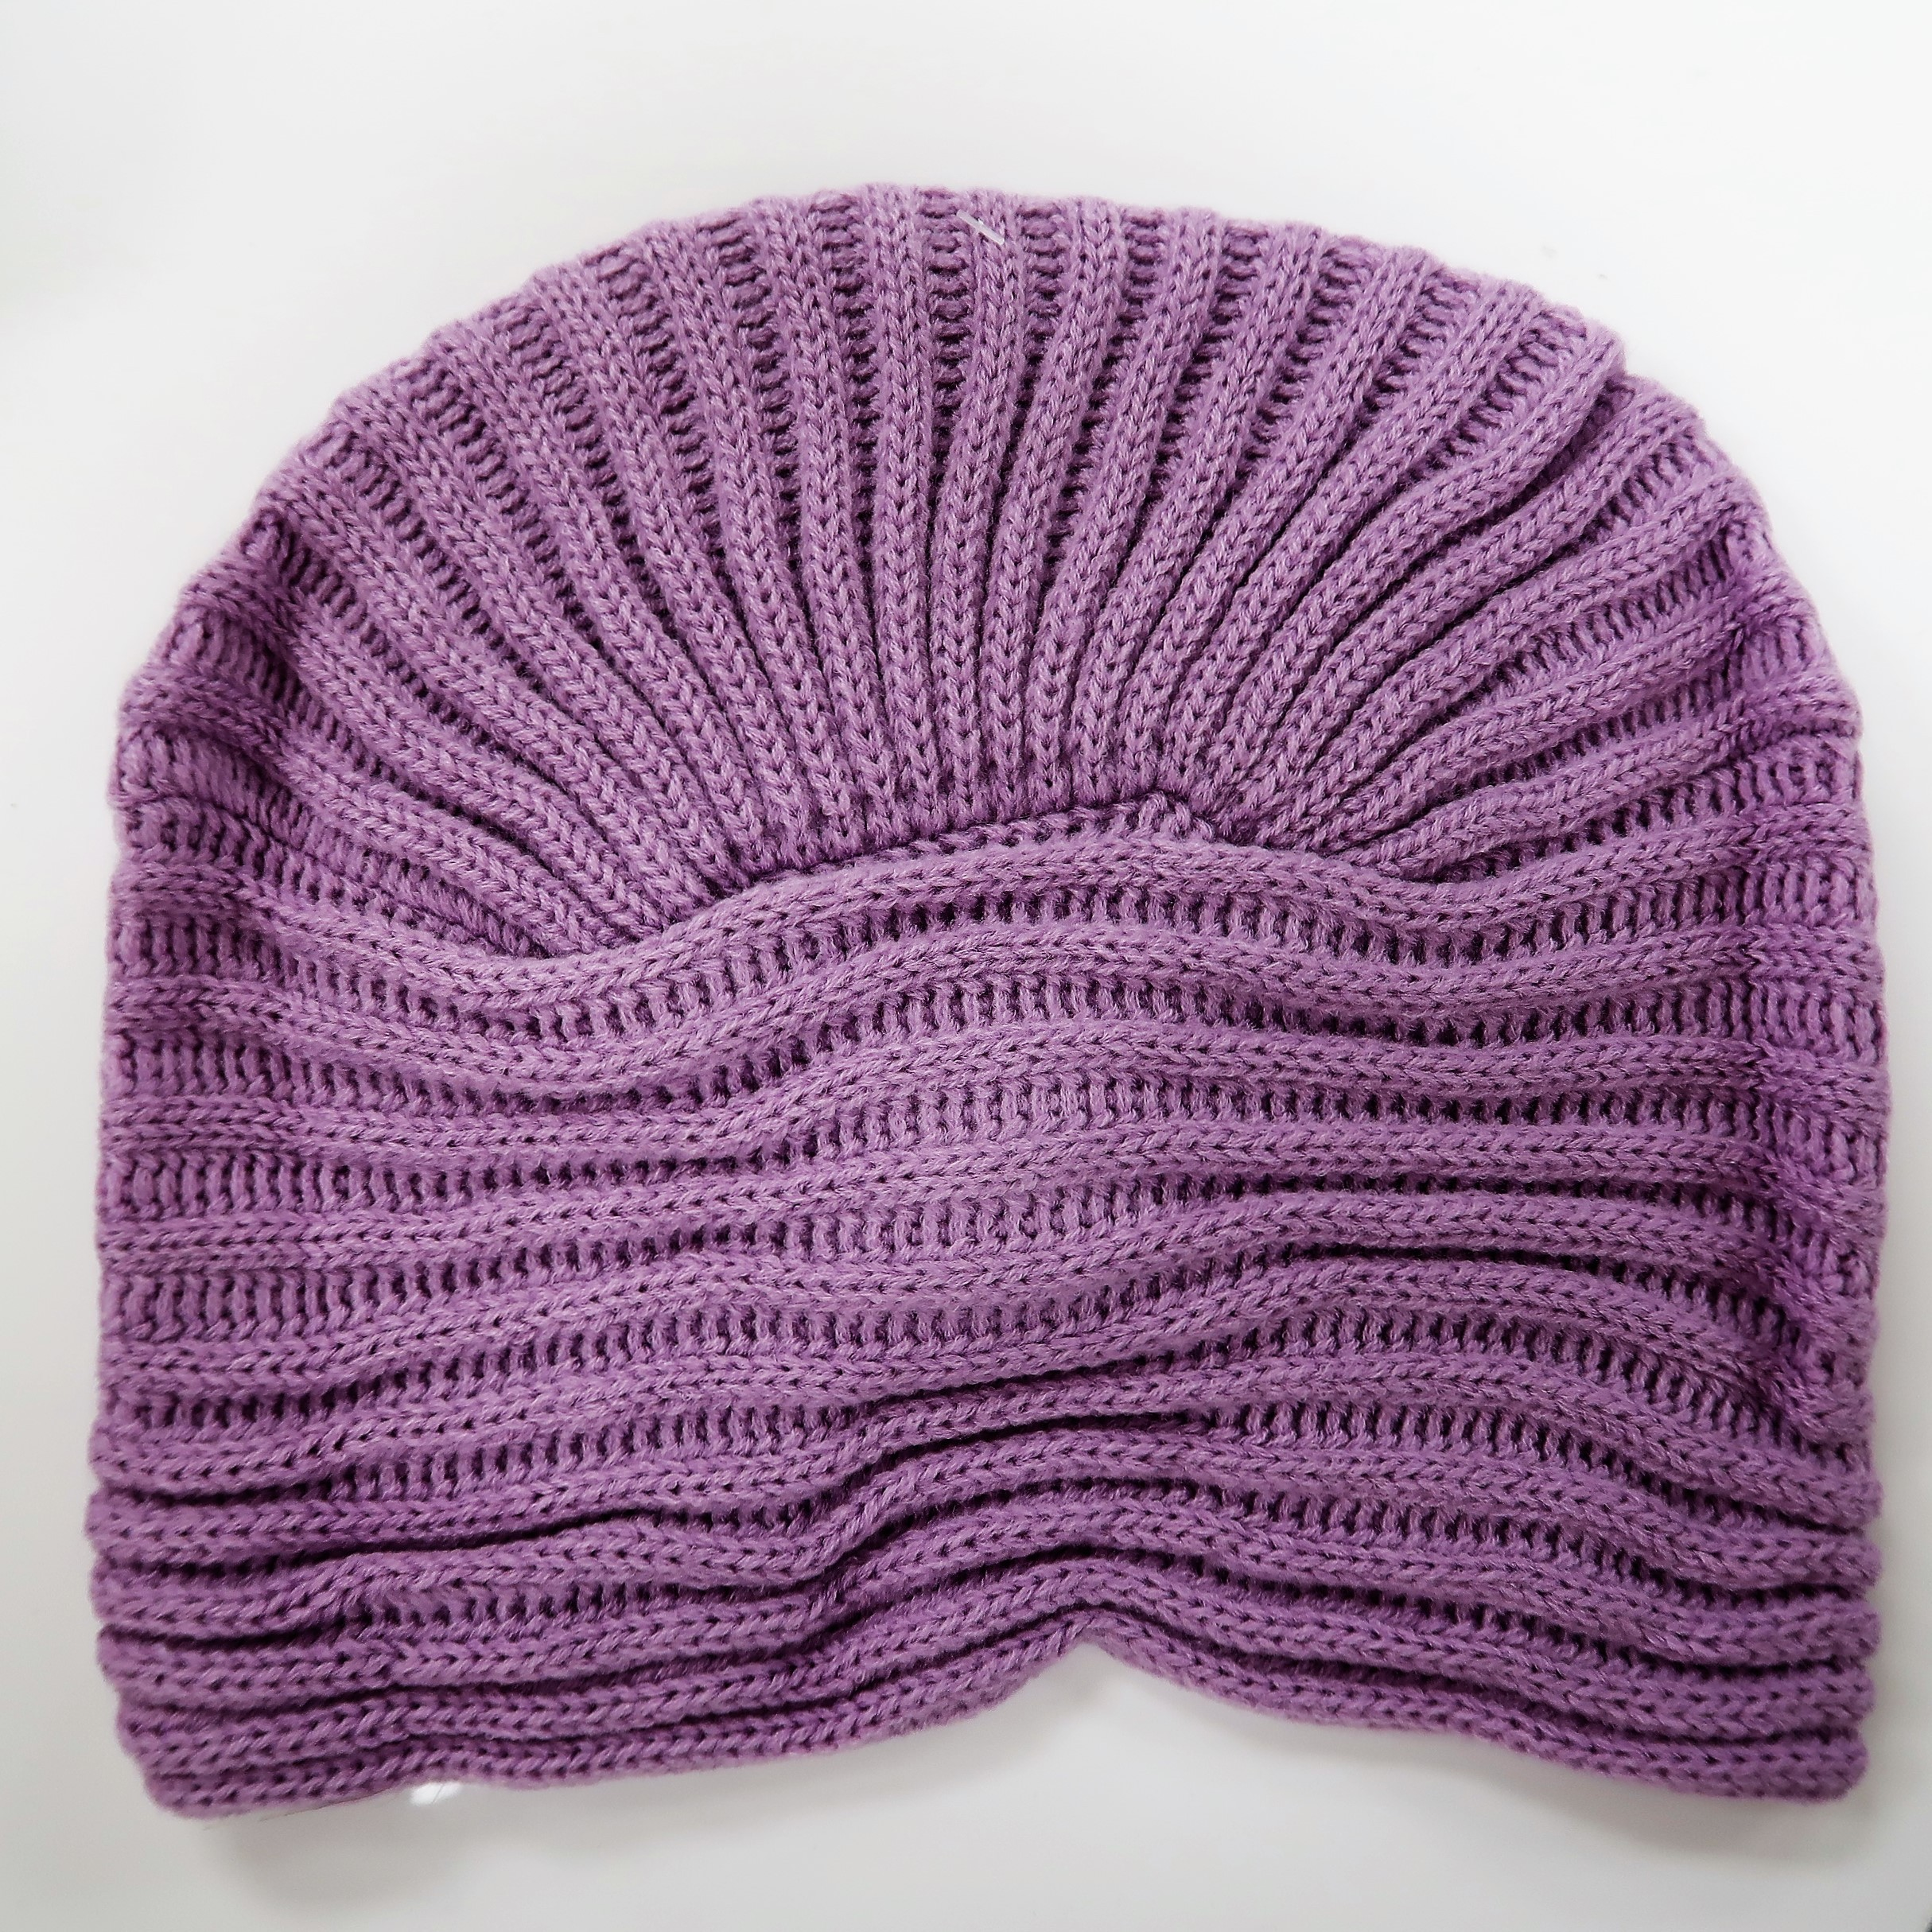 5d3f372a864 KBB Purple Striated Design Knottled Beanie Hat (3 Hats Lot)